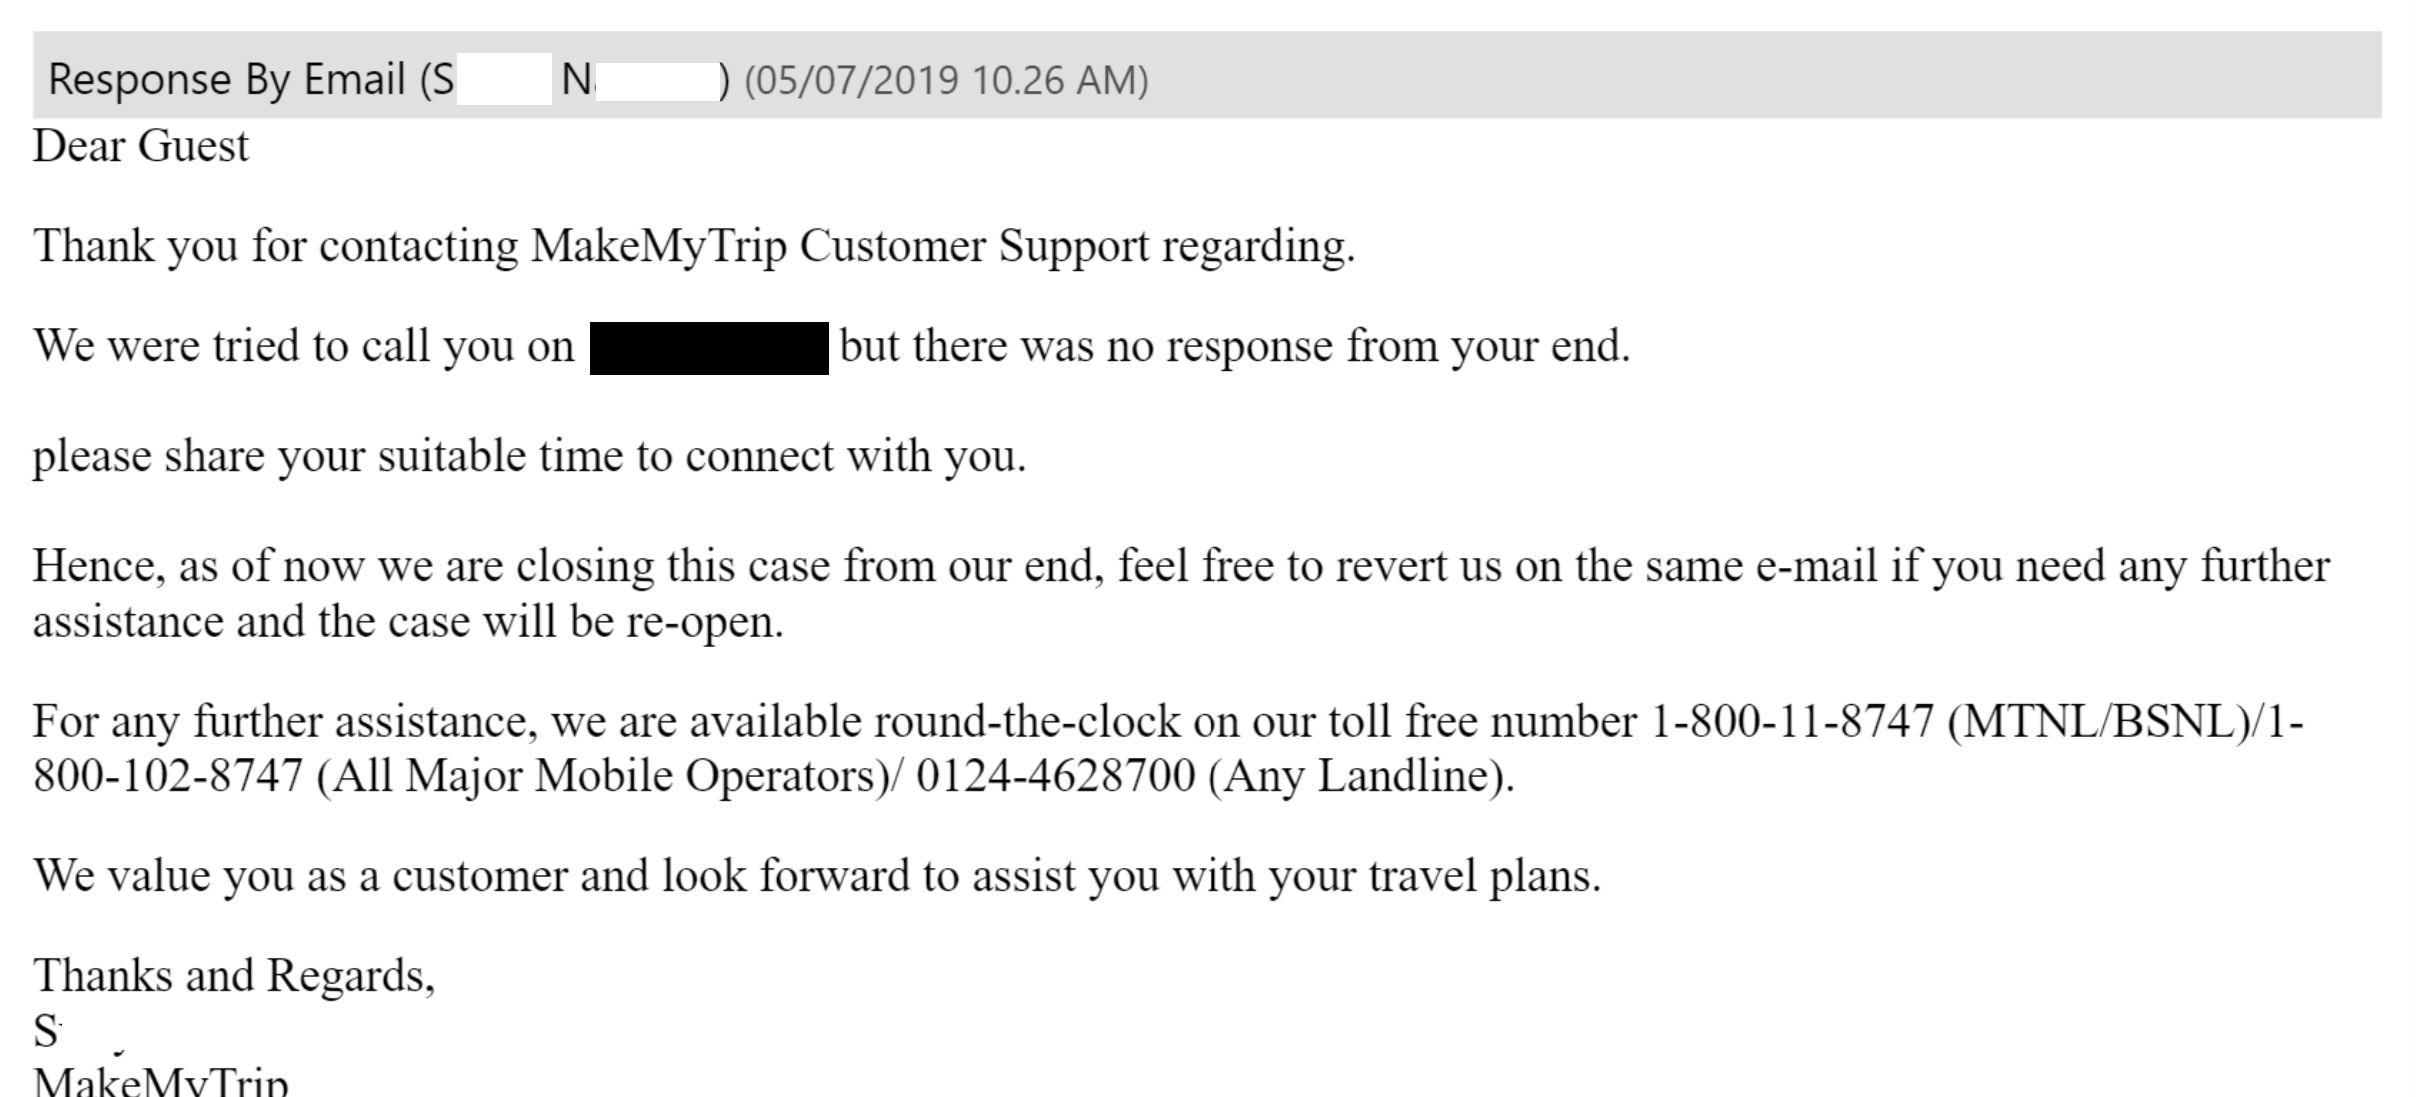 Customer Care email from MakemyTrip - A service I love otherwise!